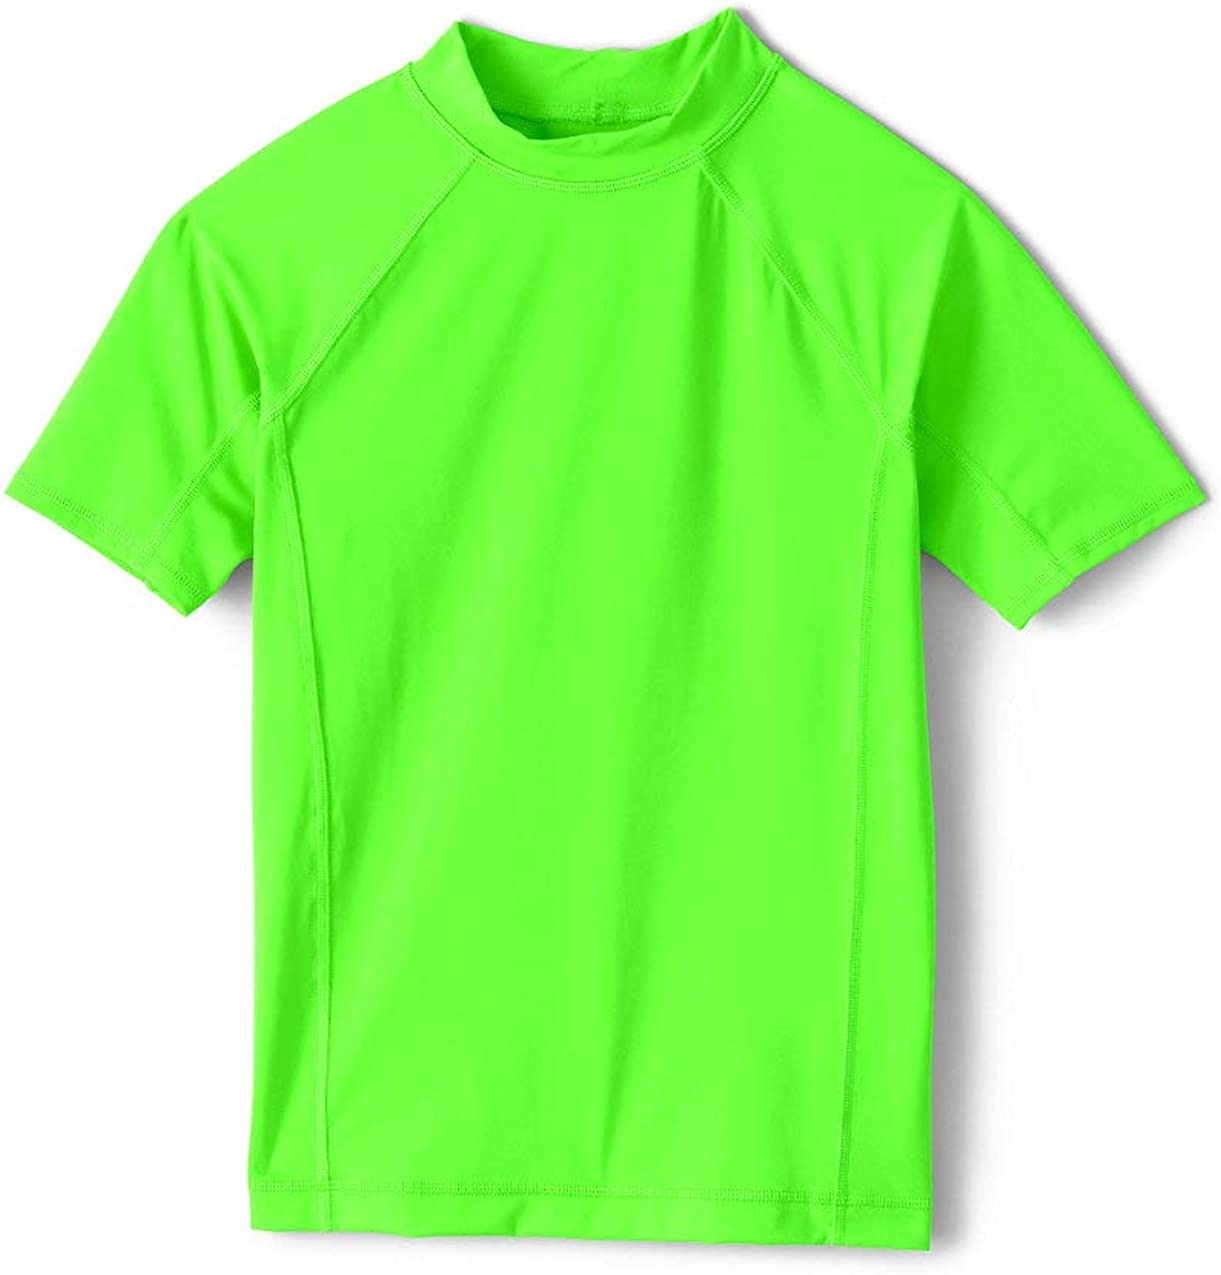 Lands End Boy Solid Short Sleeve Rashguard Green Gecko Neon Big Kid Large